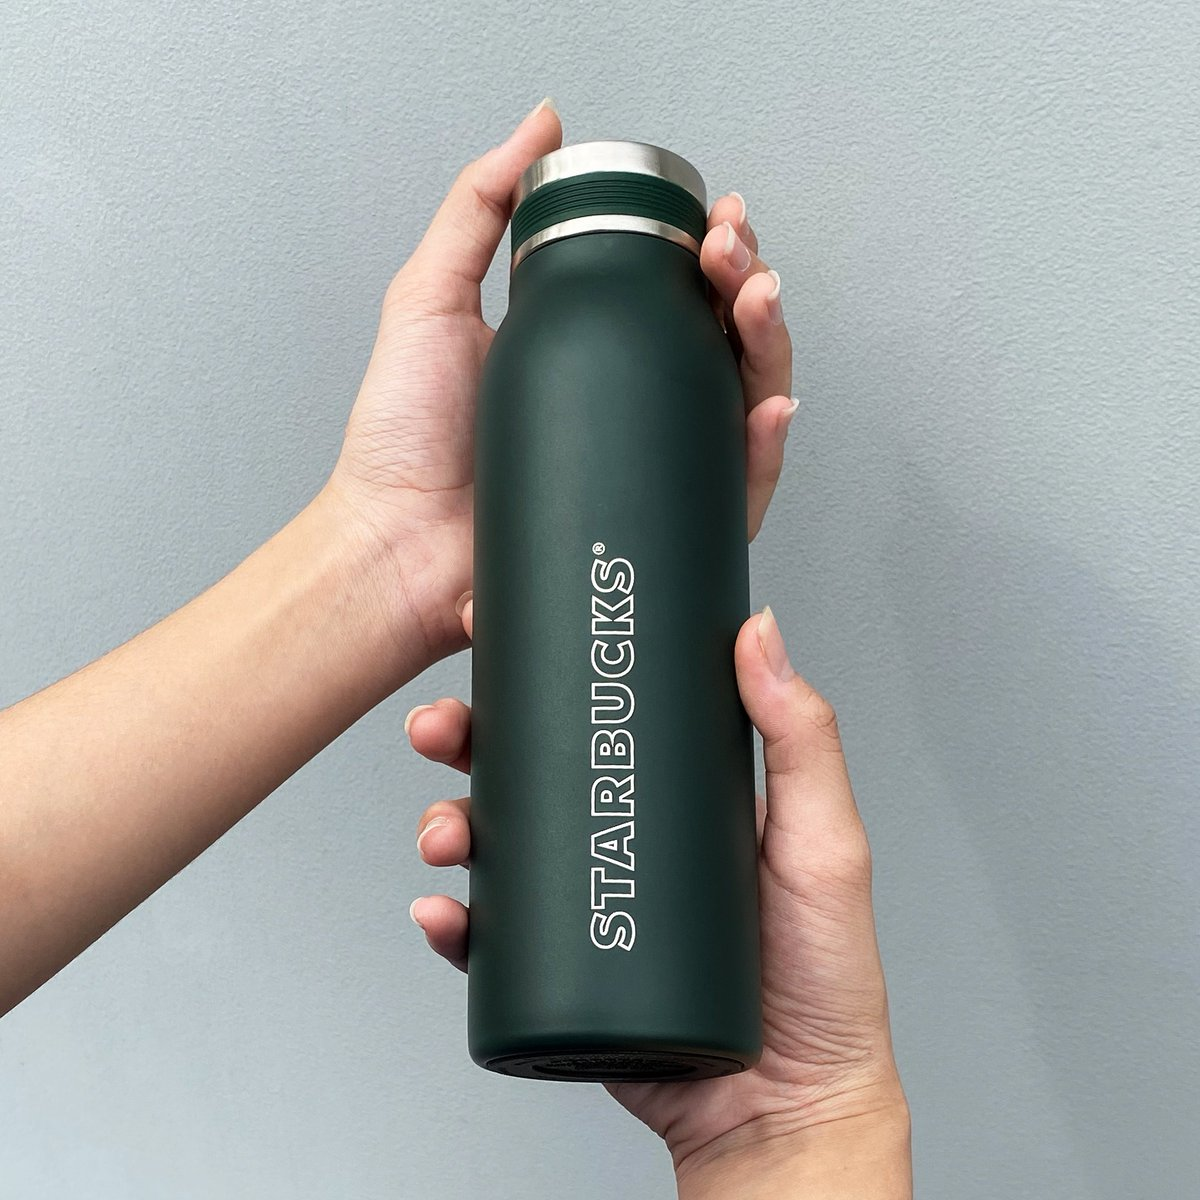 Did you know that you can get BND1 off when you bring over your own Starbucks Tumbler? Get your very own Starbucks Tumbler today! *T&C Apply https://t.co/uyYtUk63ea